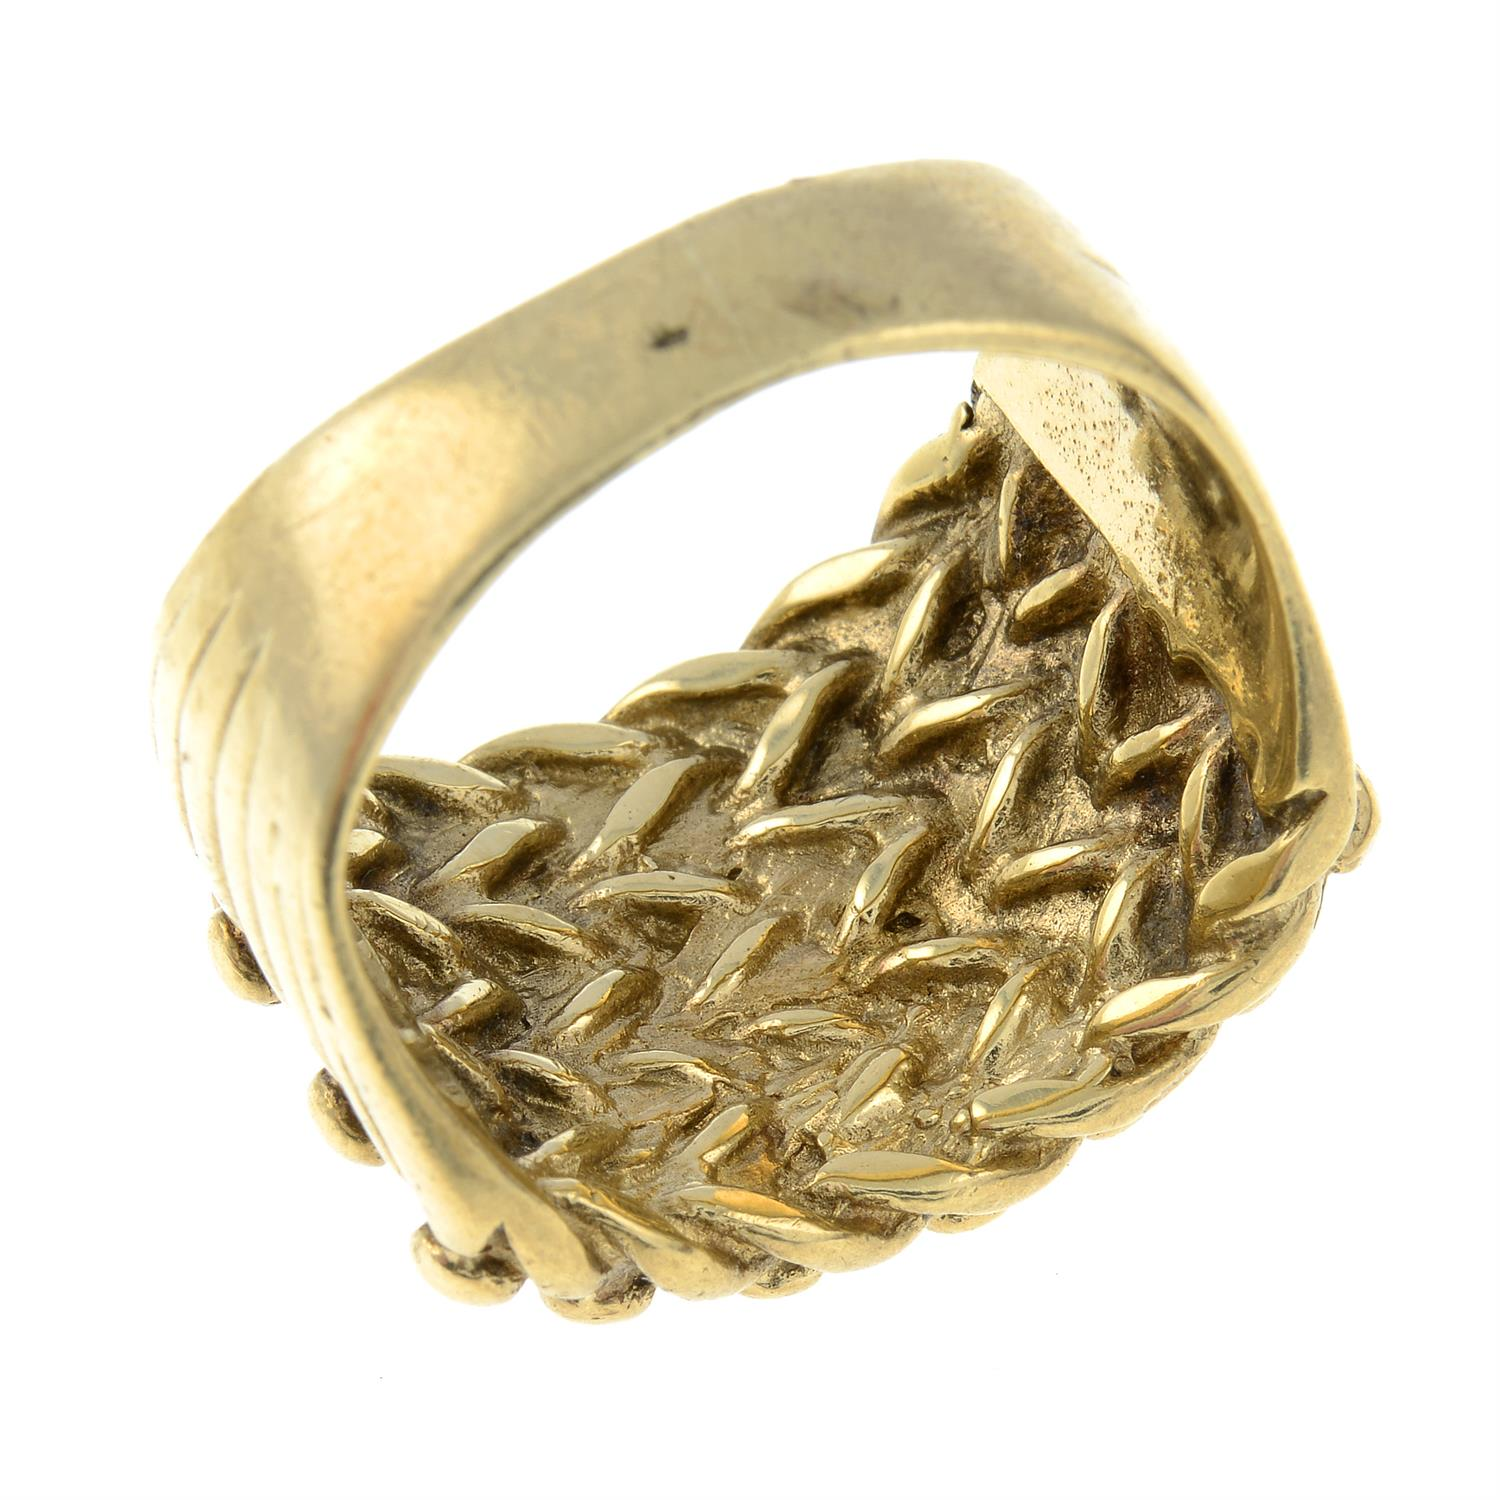 A gentleman's ring. - Image 3 of 3